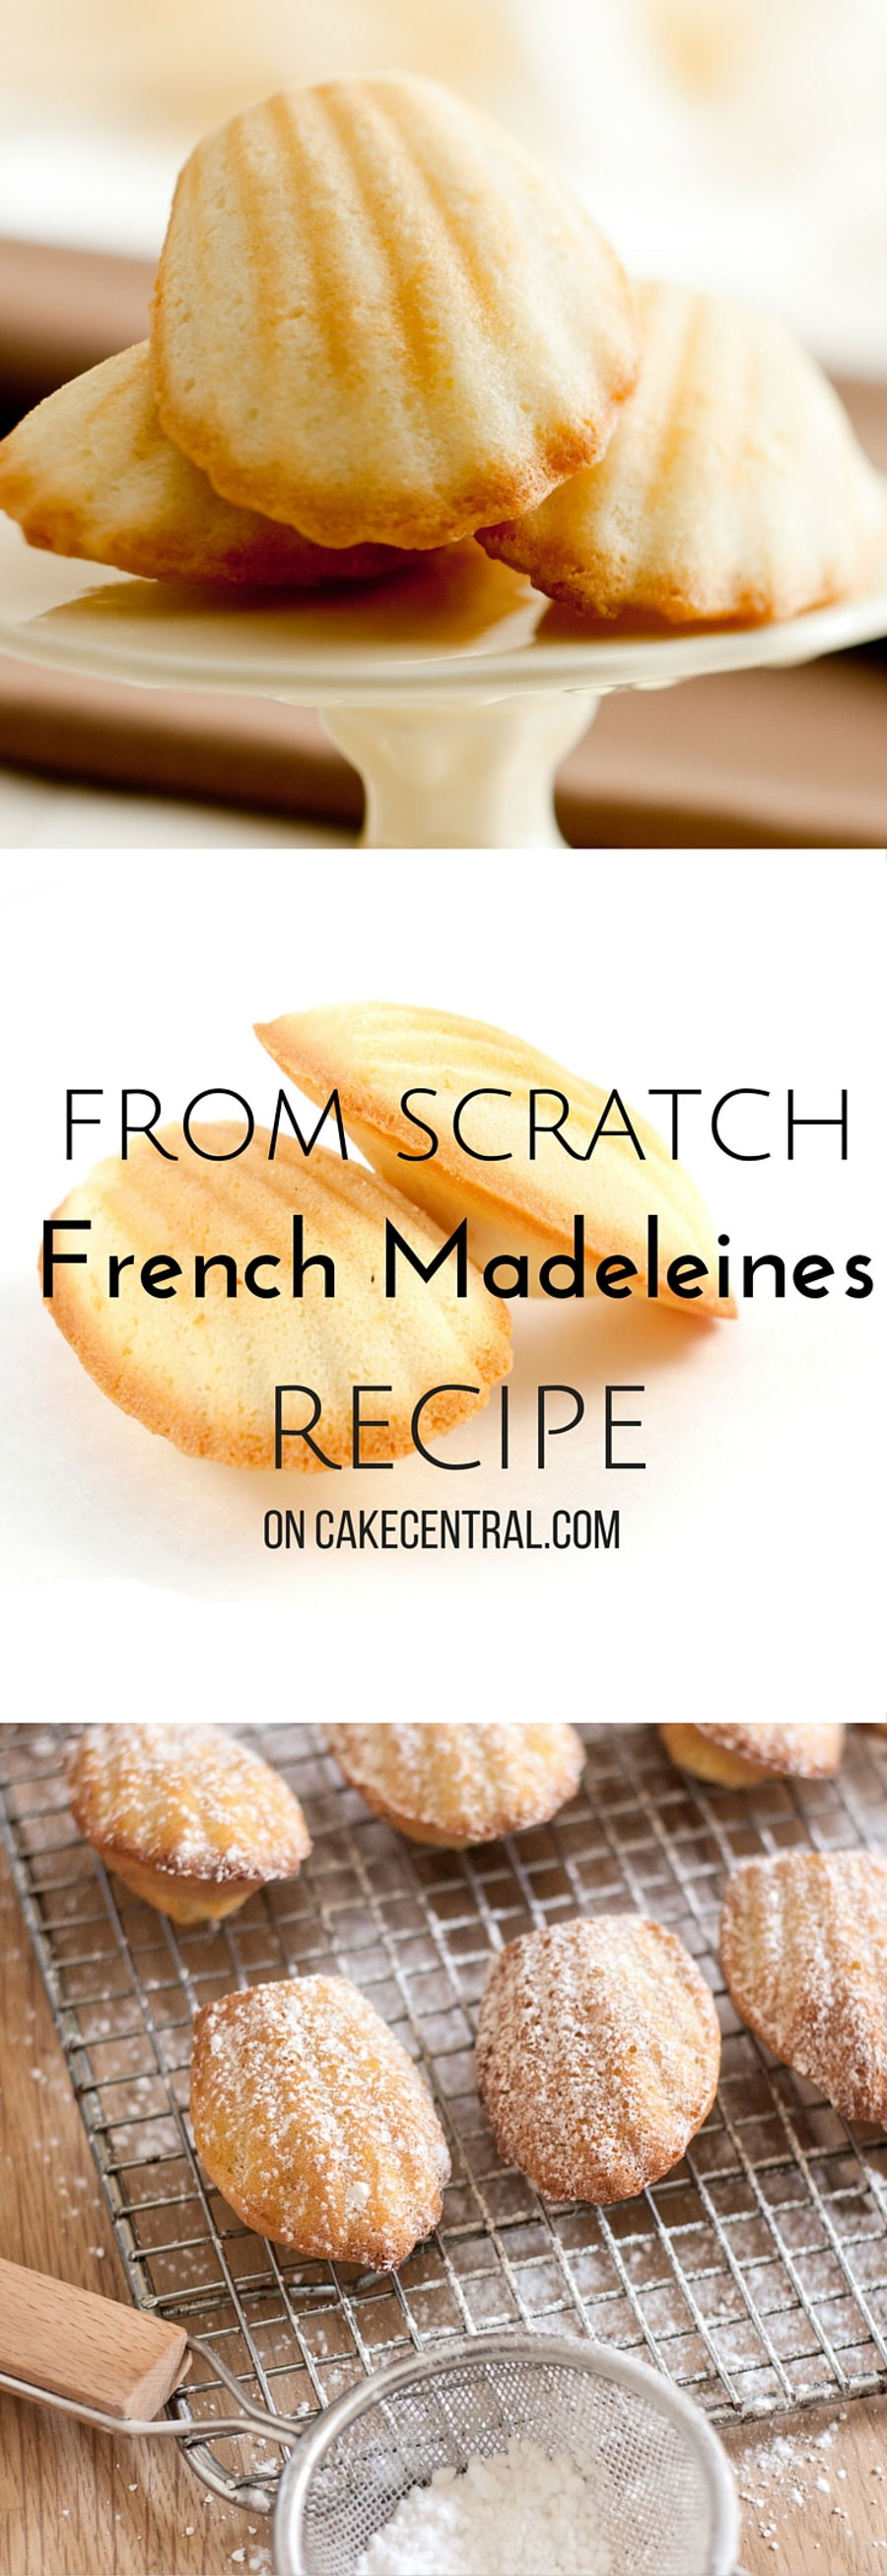 Pure Vanilla Extract >> Madeleines - CakeCentral.com